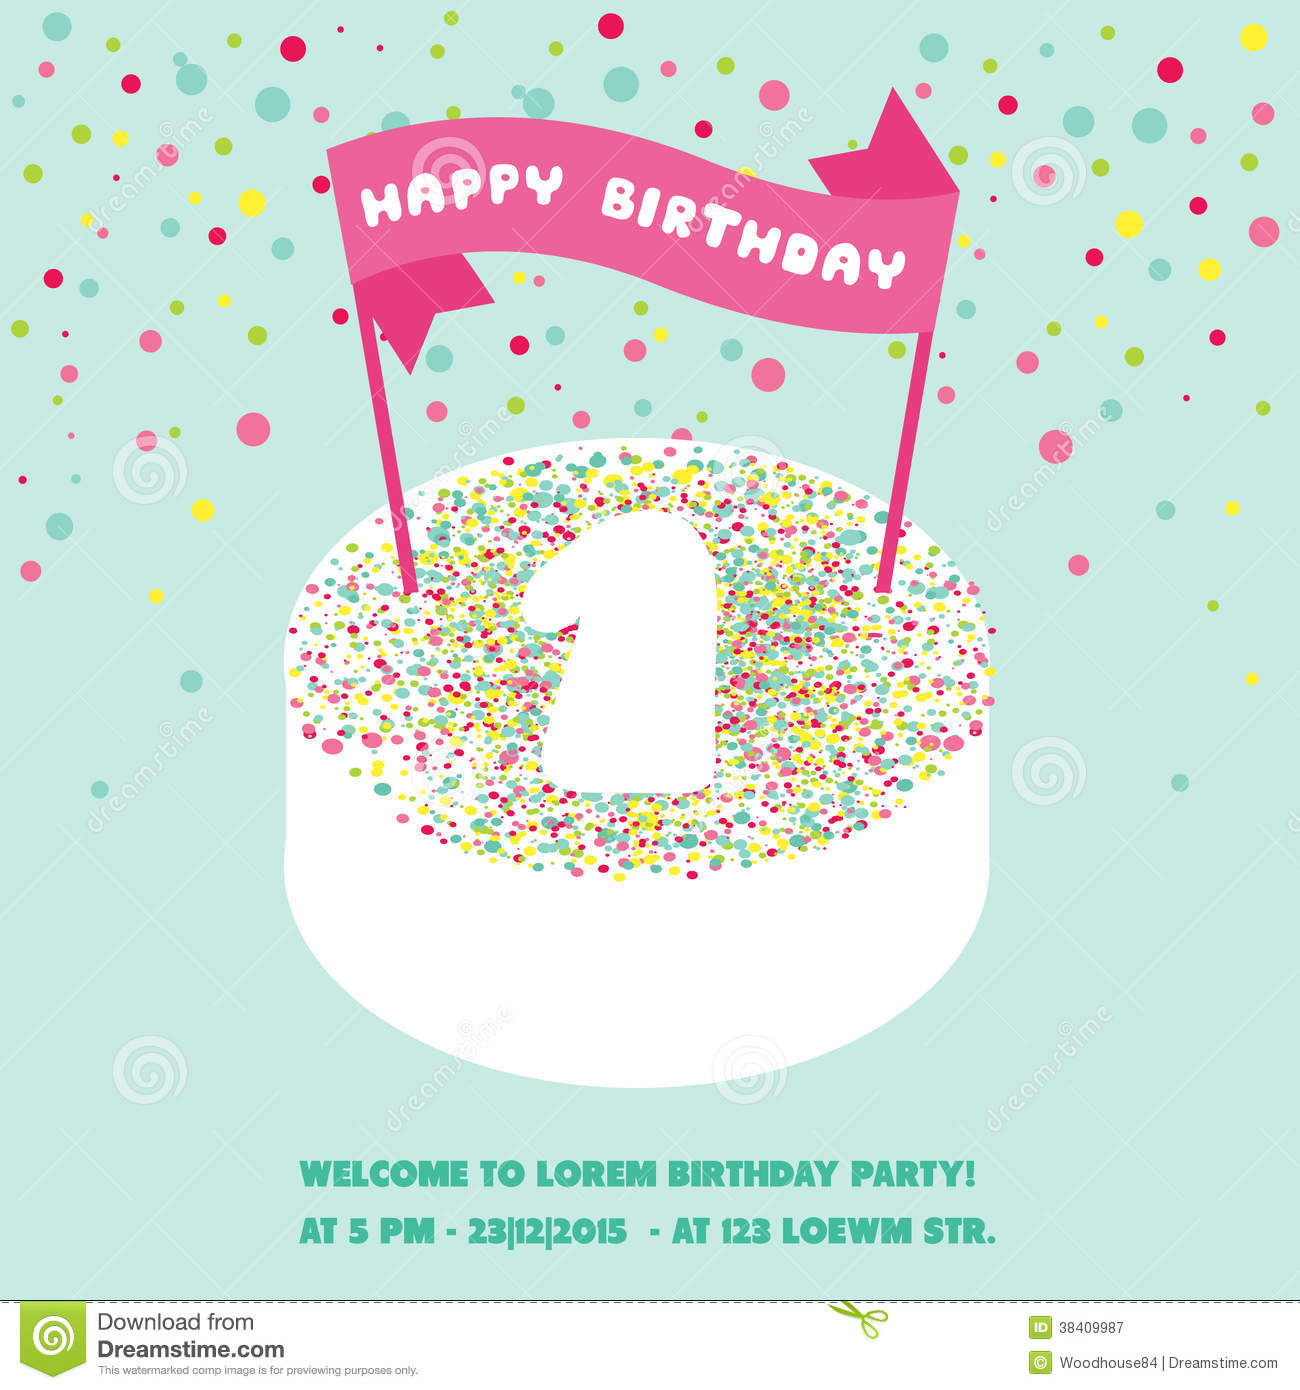 Happy Birthday Invitation Cards is an amazing ideas you had to choose for invitation design